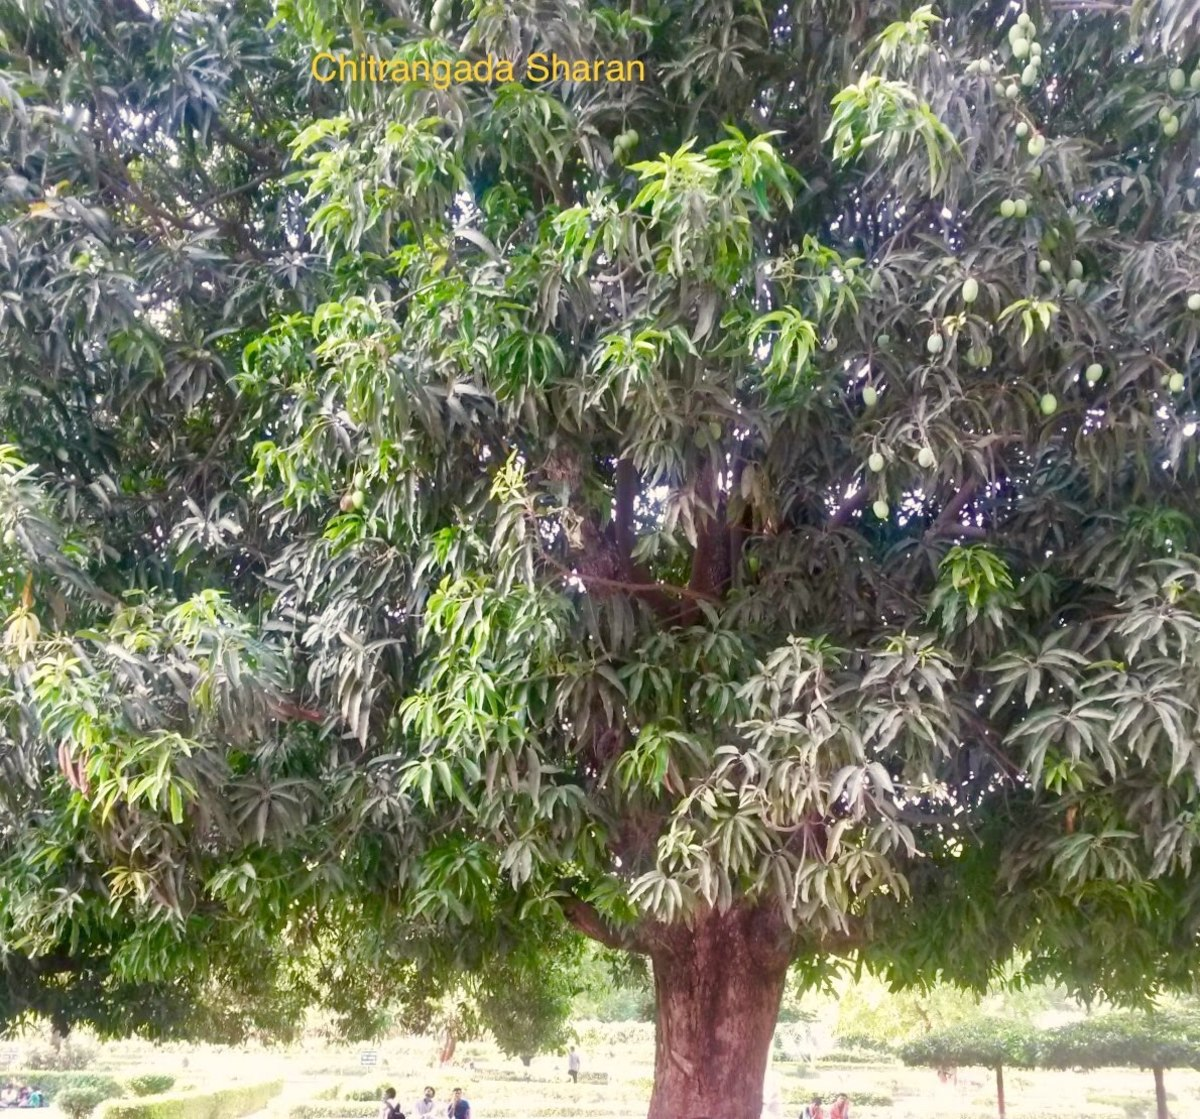 An old mango tree, loaded with ripe mangoes.